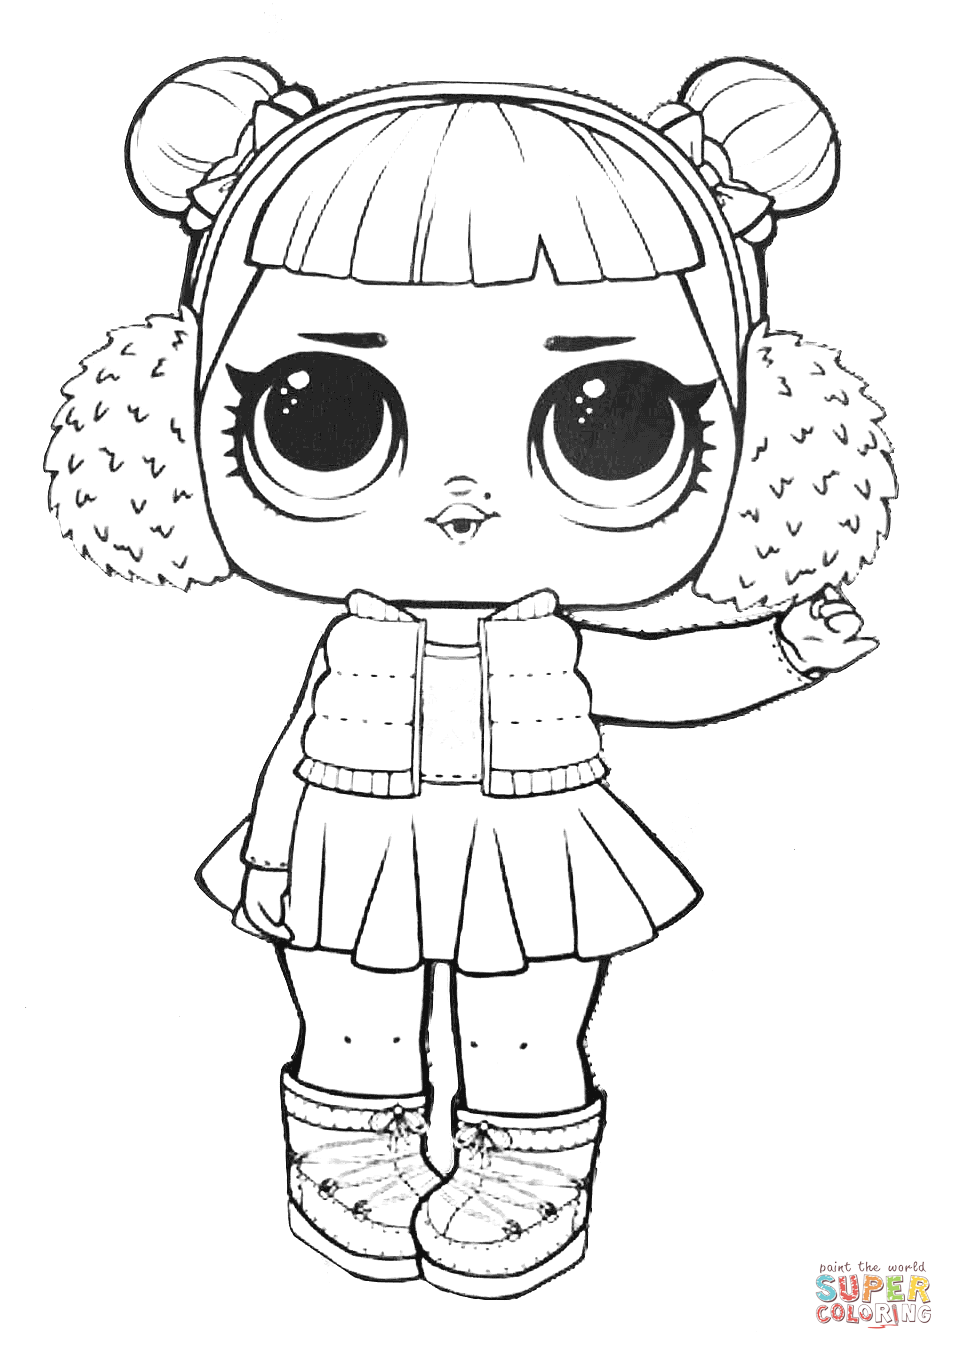 Lol Surprise Doll Snow Angel Coloring Page Free Printable Coloring Pages Imprimir Dibujos Para Colorear Dibujos Colorear Ninos Dibujos Para Colorear